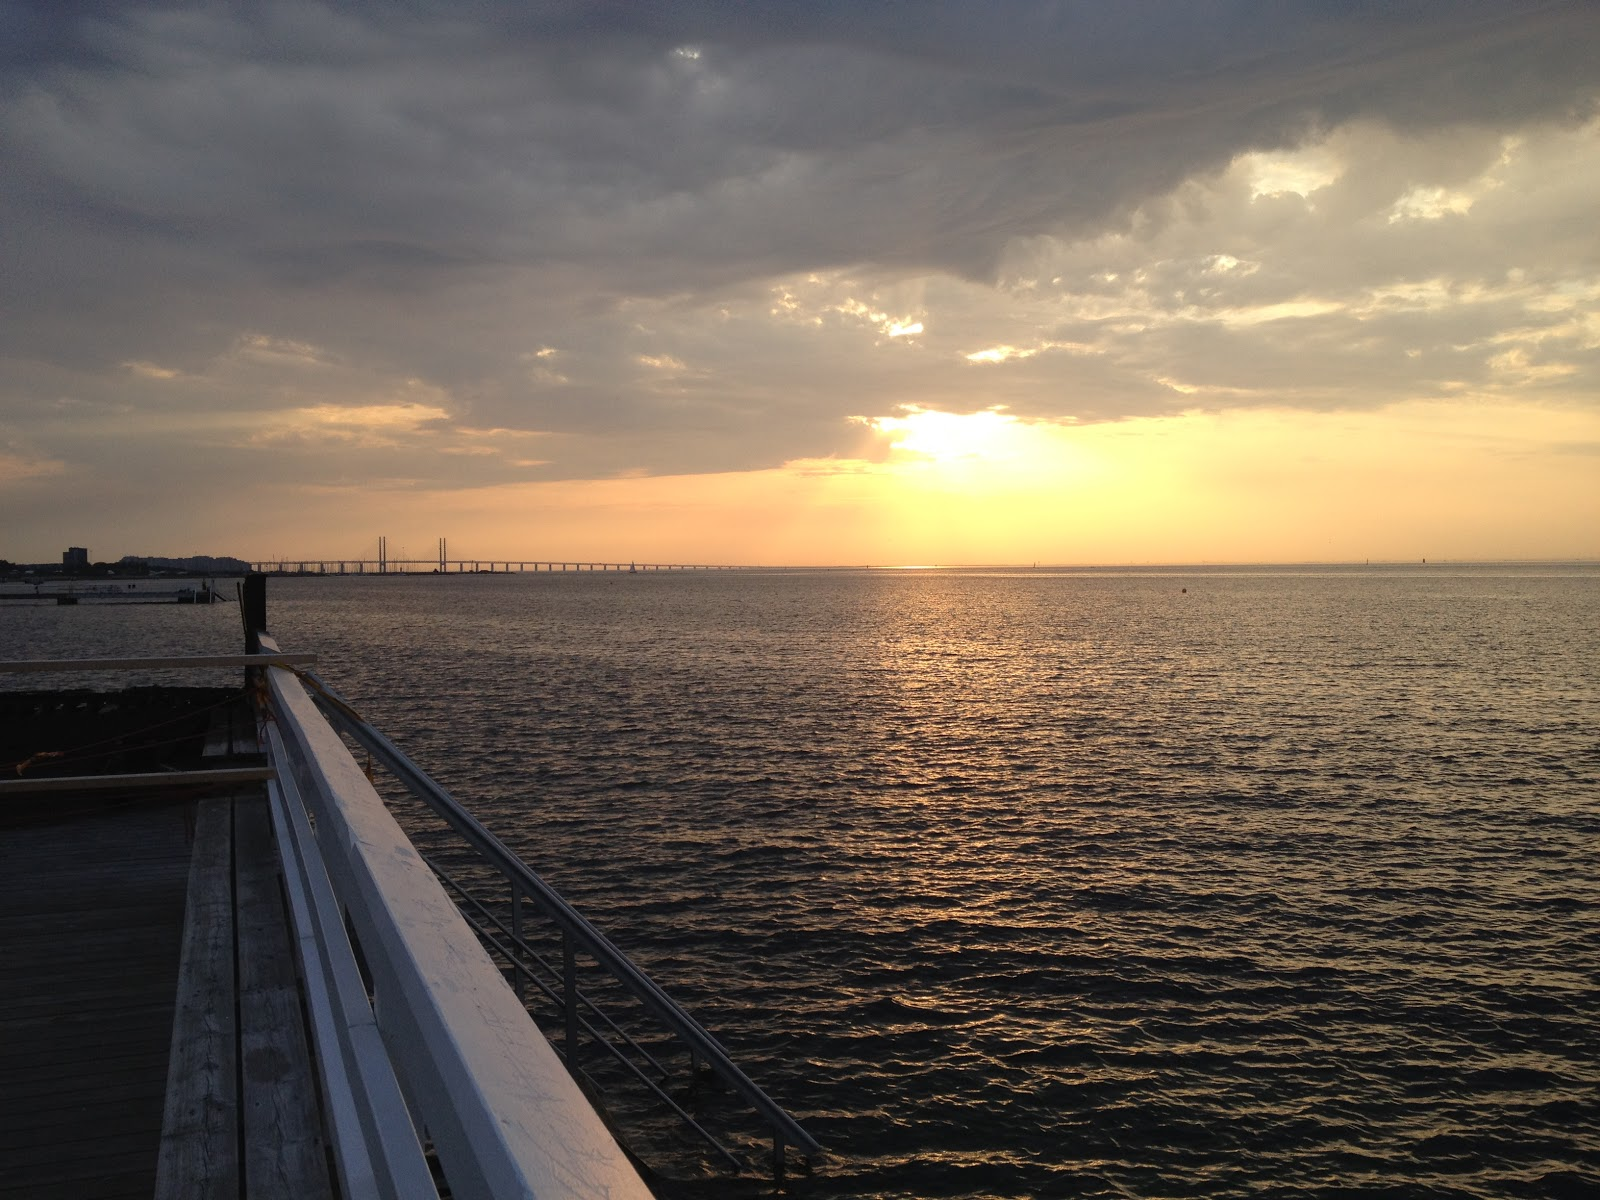 sunset in Oresund as seen from Bo01 in Vastra Hamnen